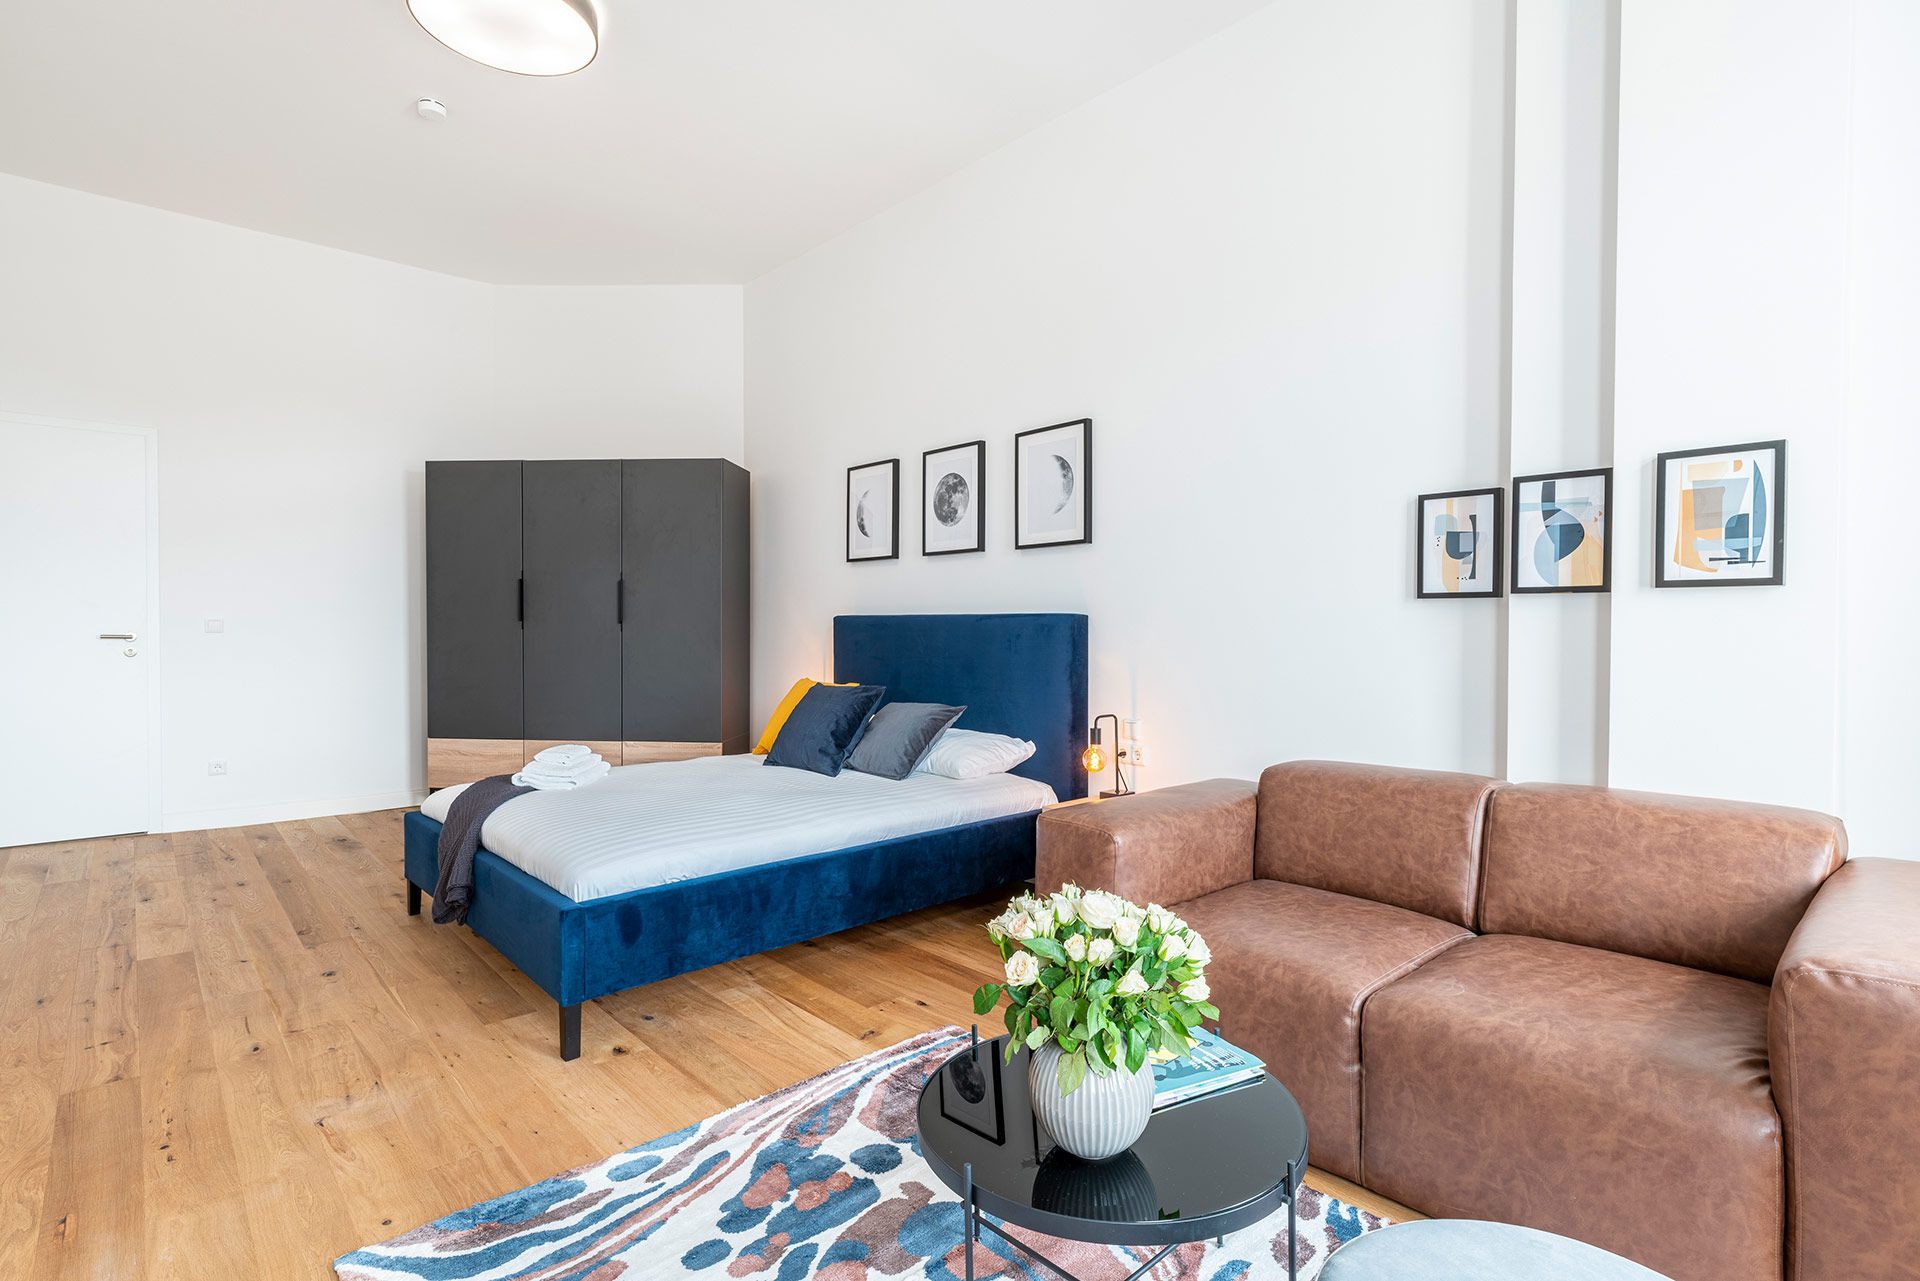 Private Room - Large apartment to rent in Berlin STRA-STRA-3334-2